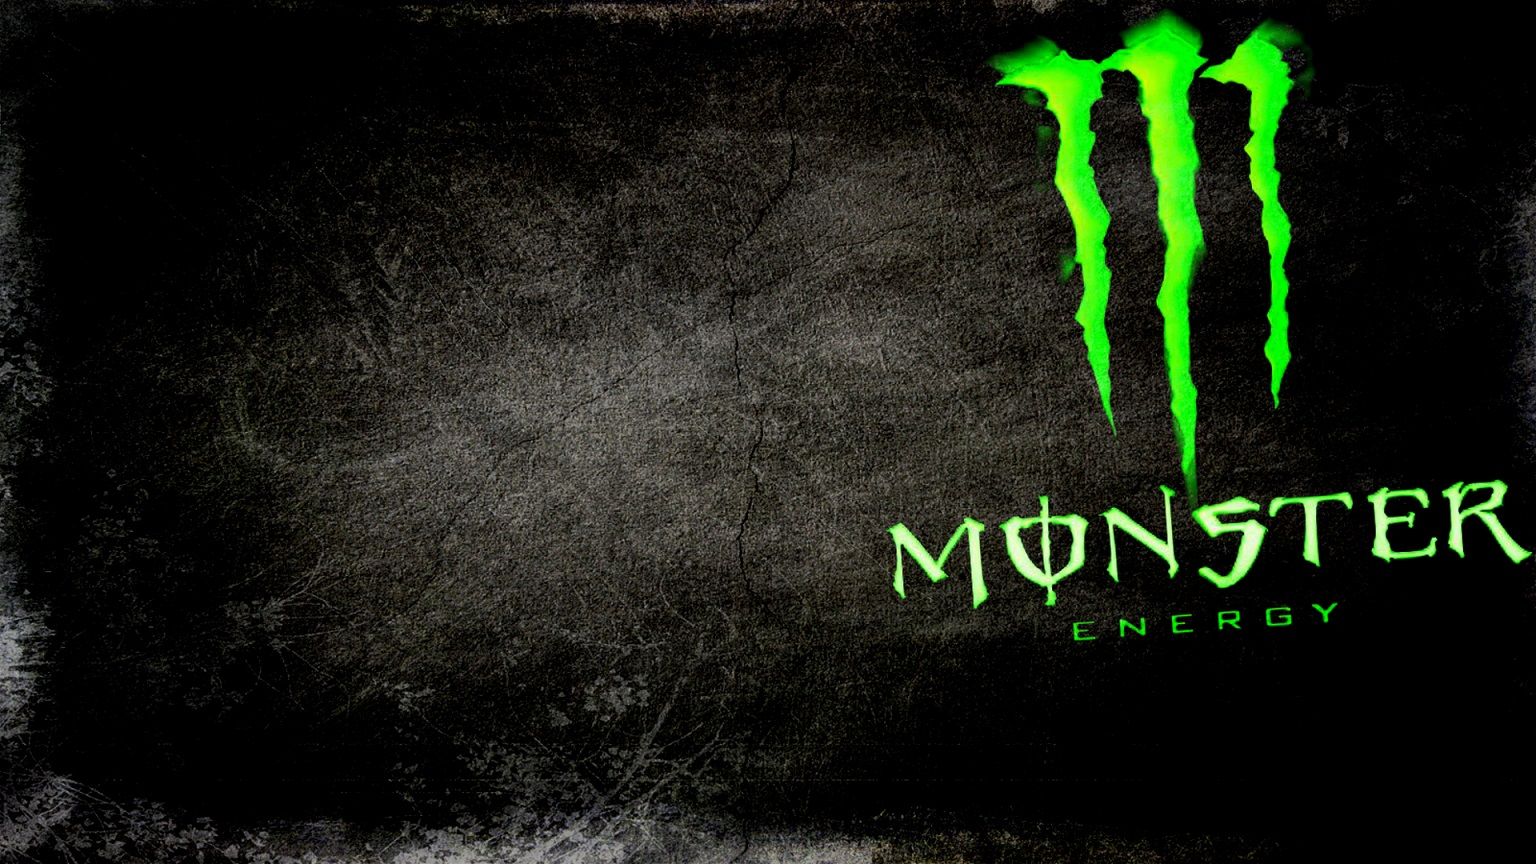 fondos-hd-de-monster-Fondosdepantalla.top (7)